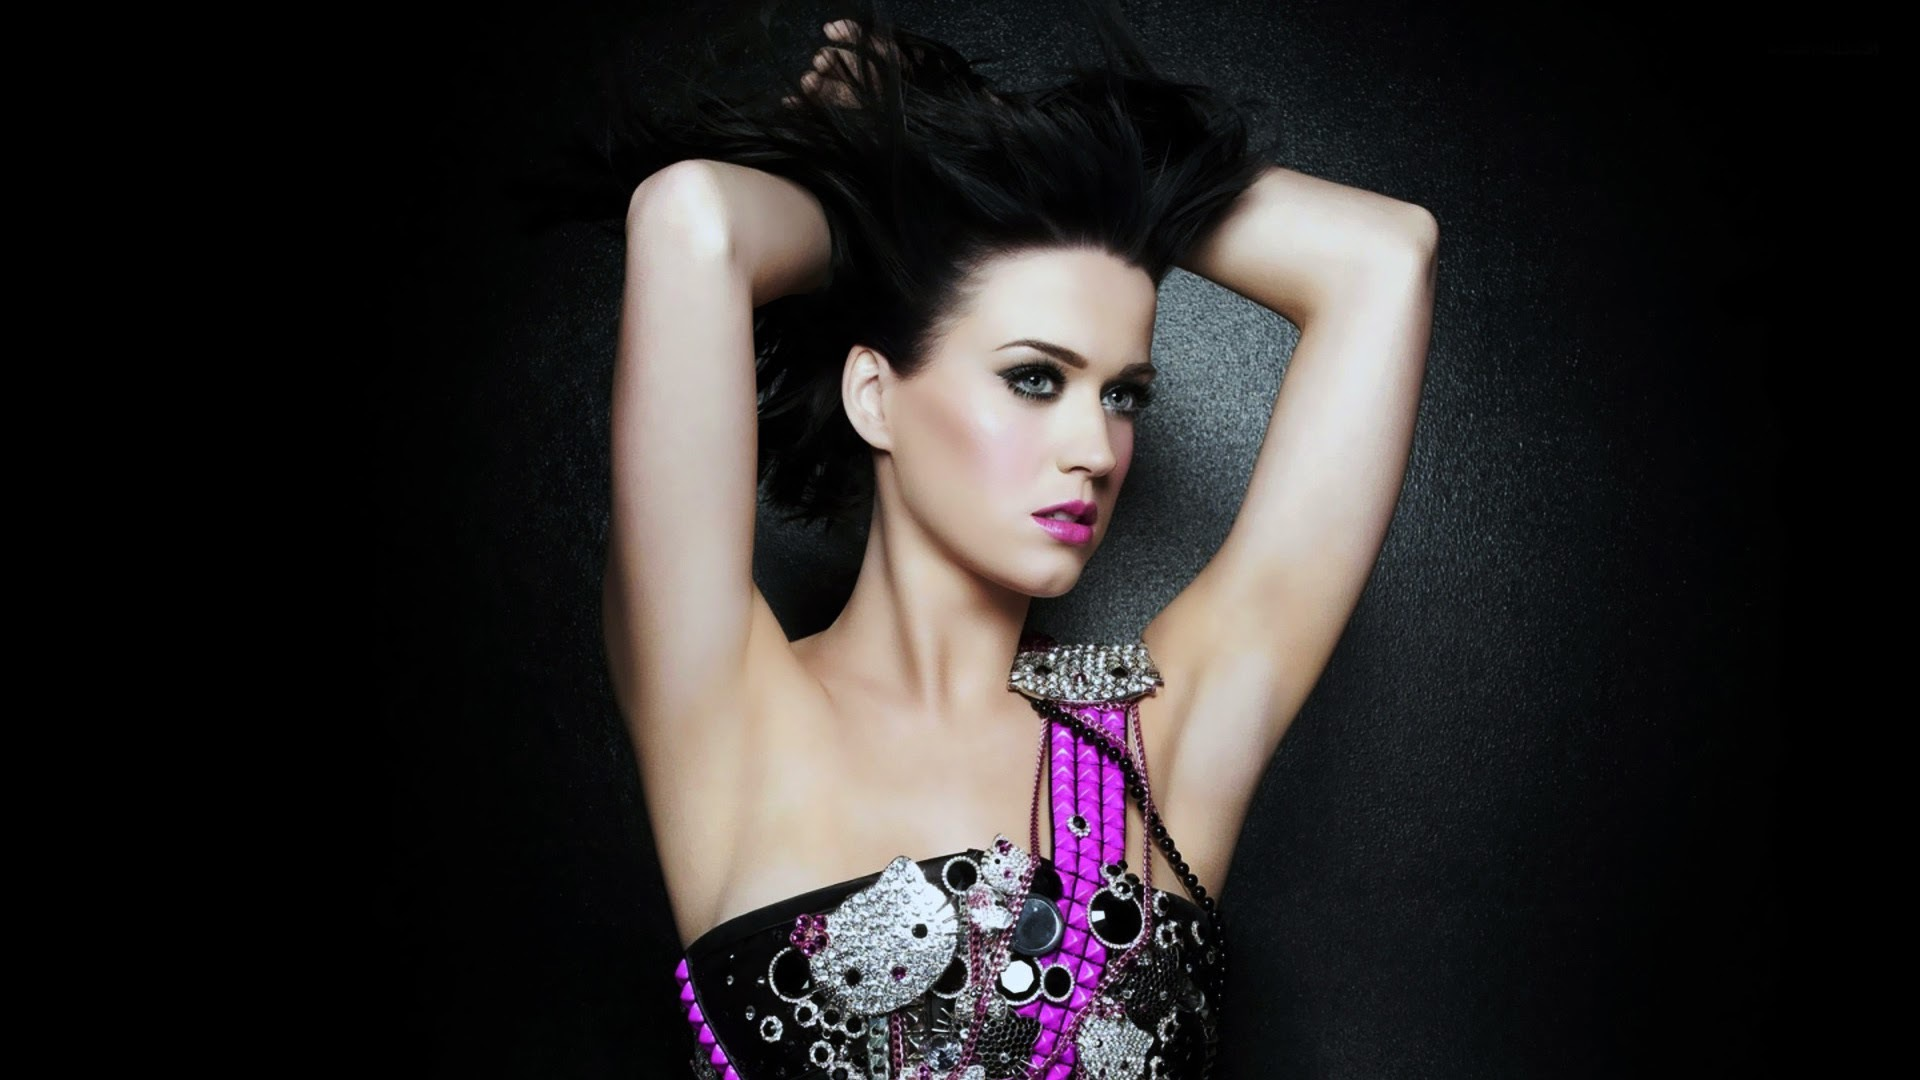 katy perry In her new youtube original movie, katy perry: will you be my witness, the colorful pop icon puts her life on camera 24/7 for four whole days, in her most intimate reveal yet.